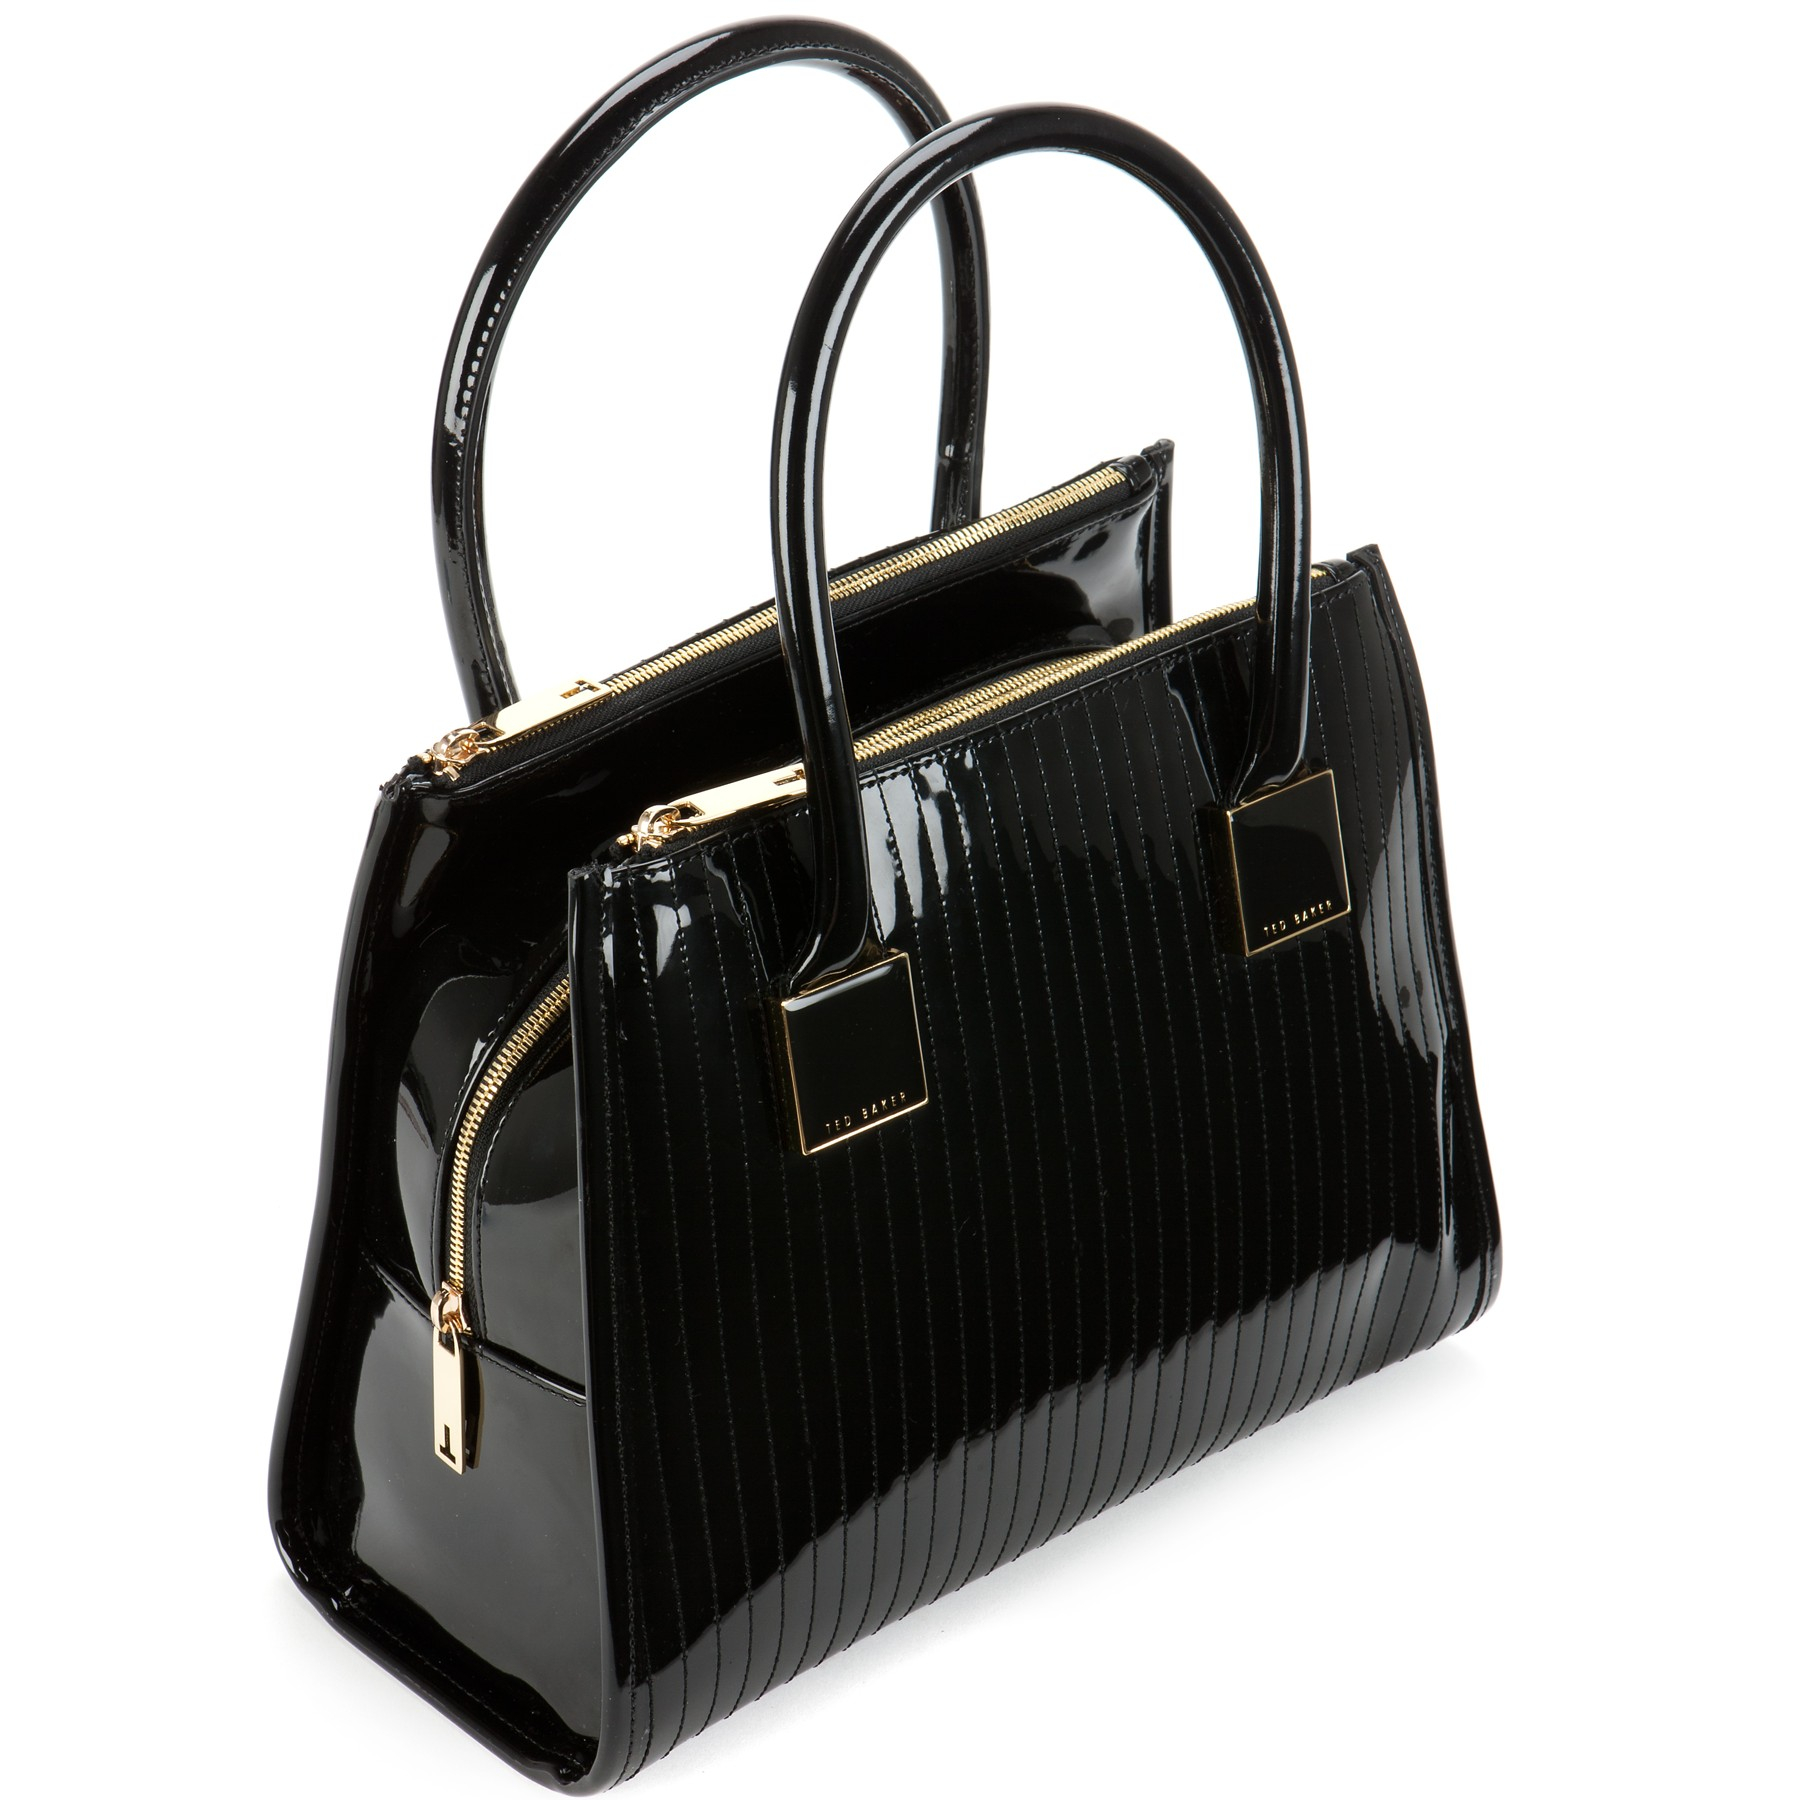 Lyst - Ted baker Sophia Quilted Tote Bag in Black : ted baker quilted tote bag - Adamdwight.com